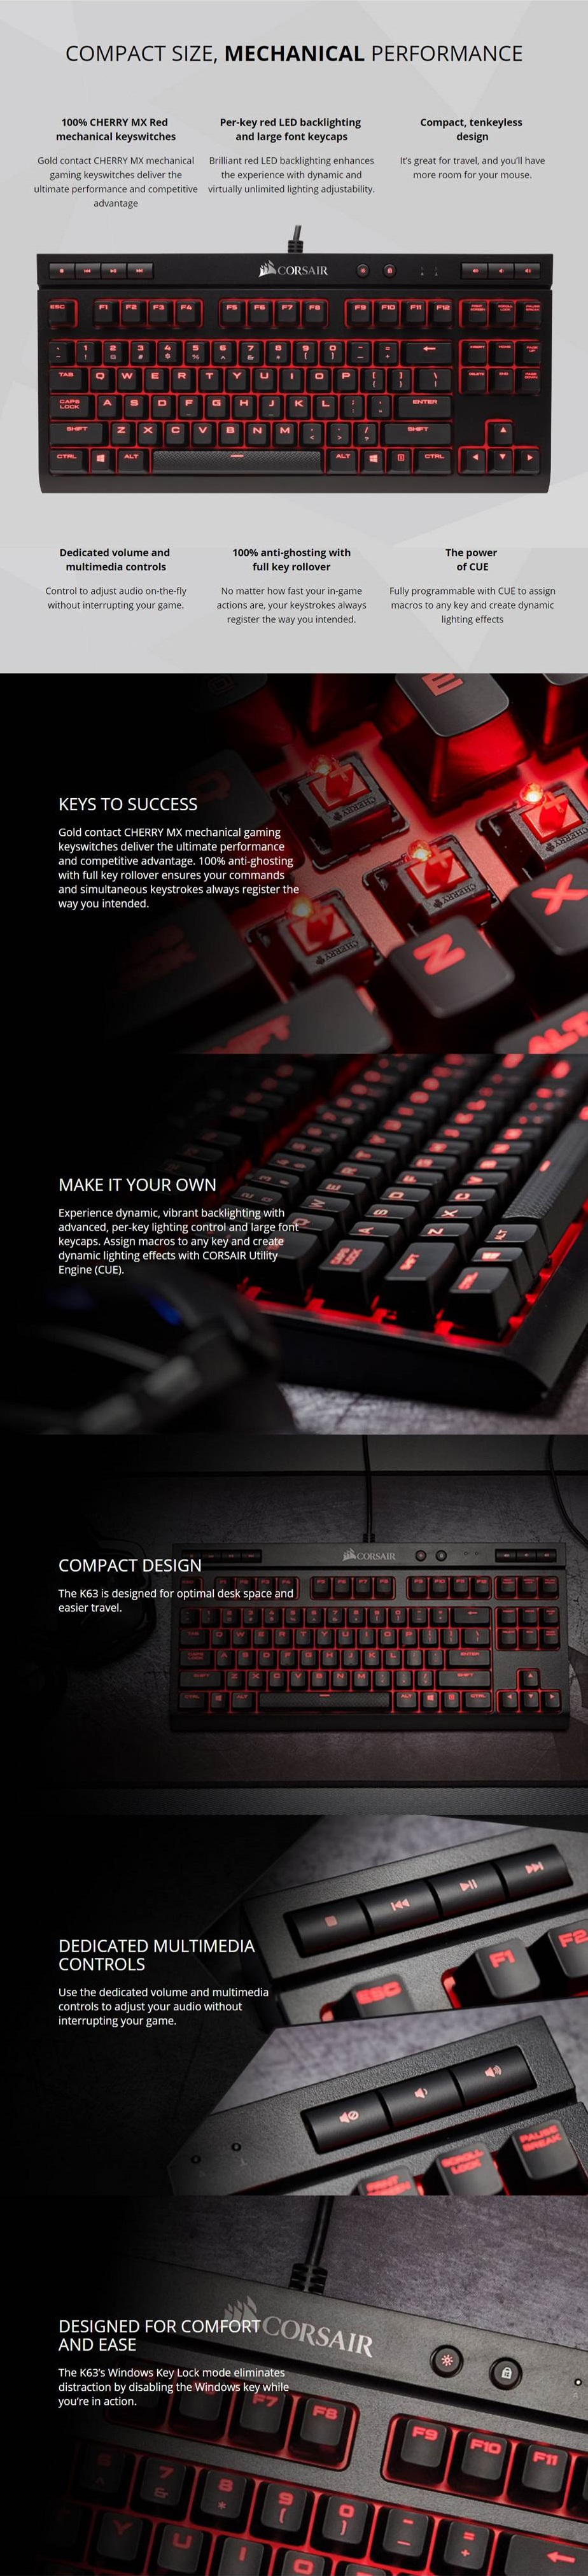 Corsair K63 Compact Mechanical Gaming Keyboard Cherry Mx Red Strafe Led Product Specs Key Switches